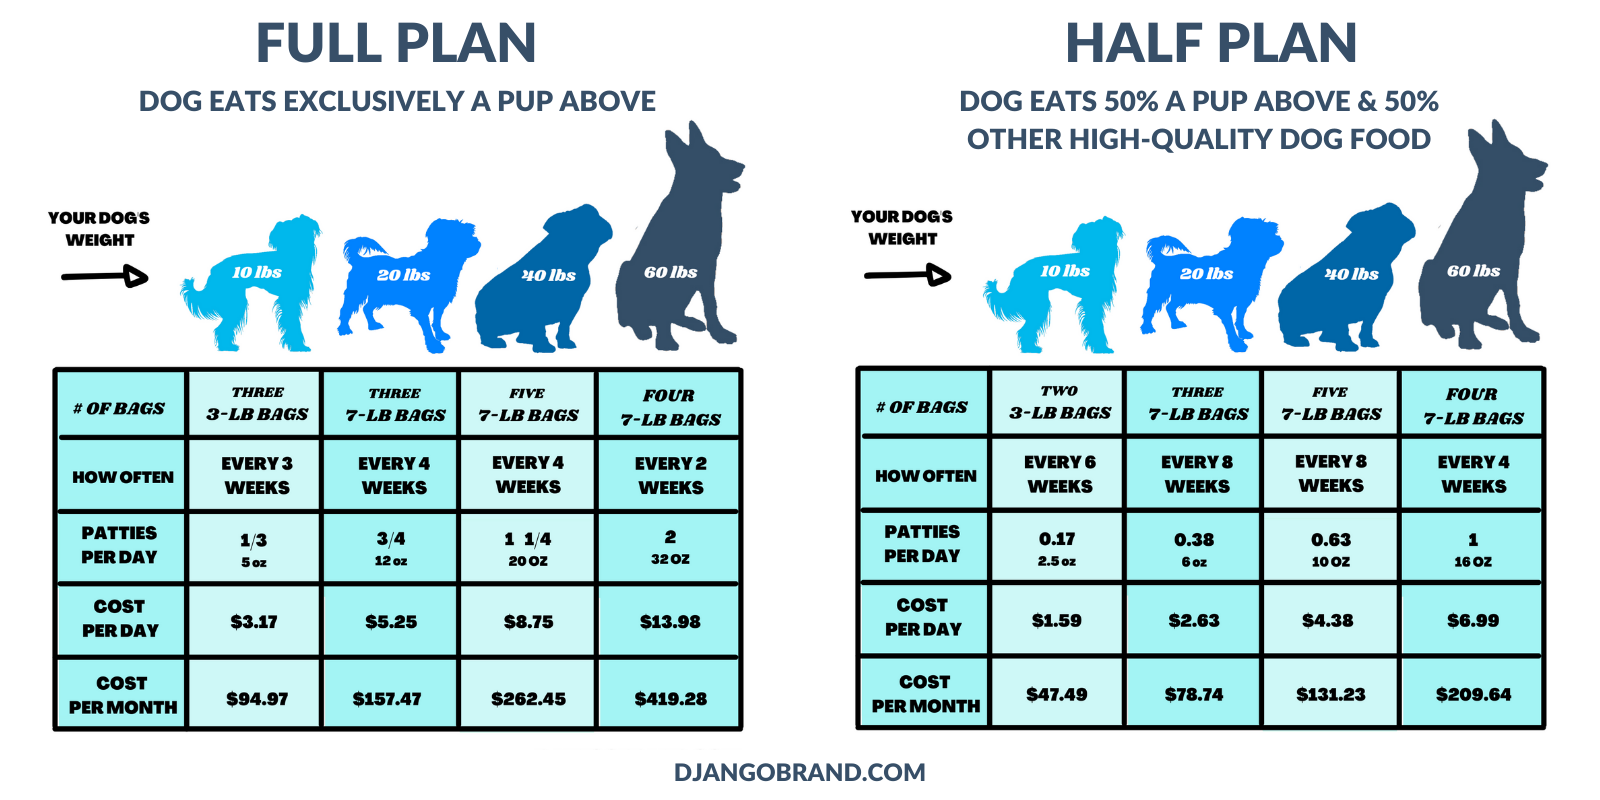 DJANGO Dog Blog Graphic - How much does A Pup Above cost?